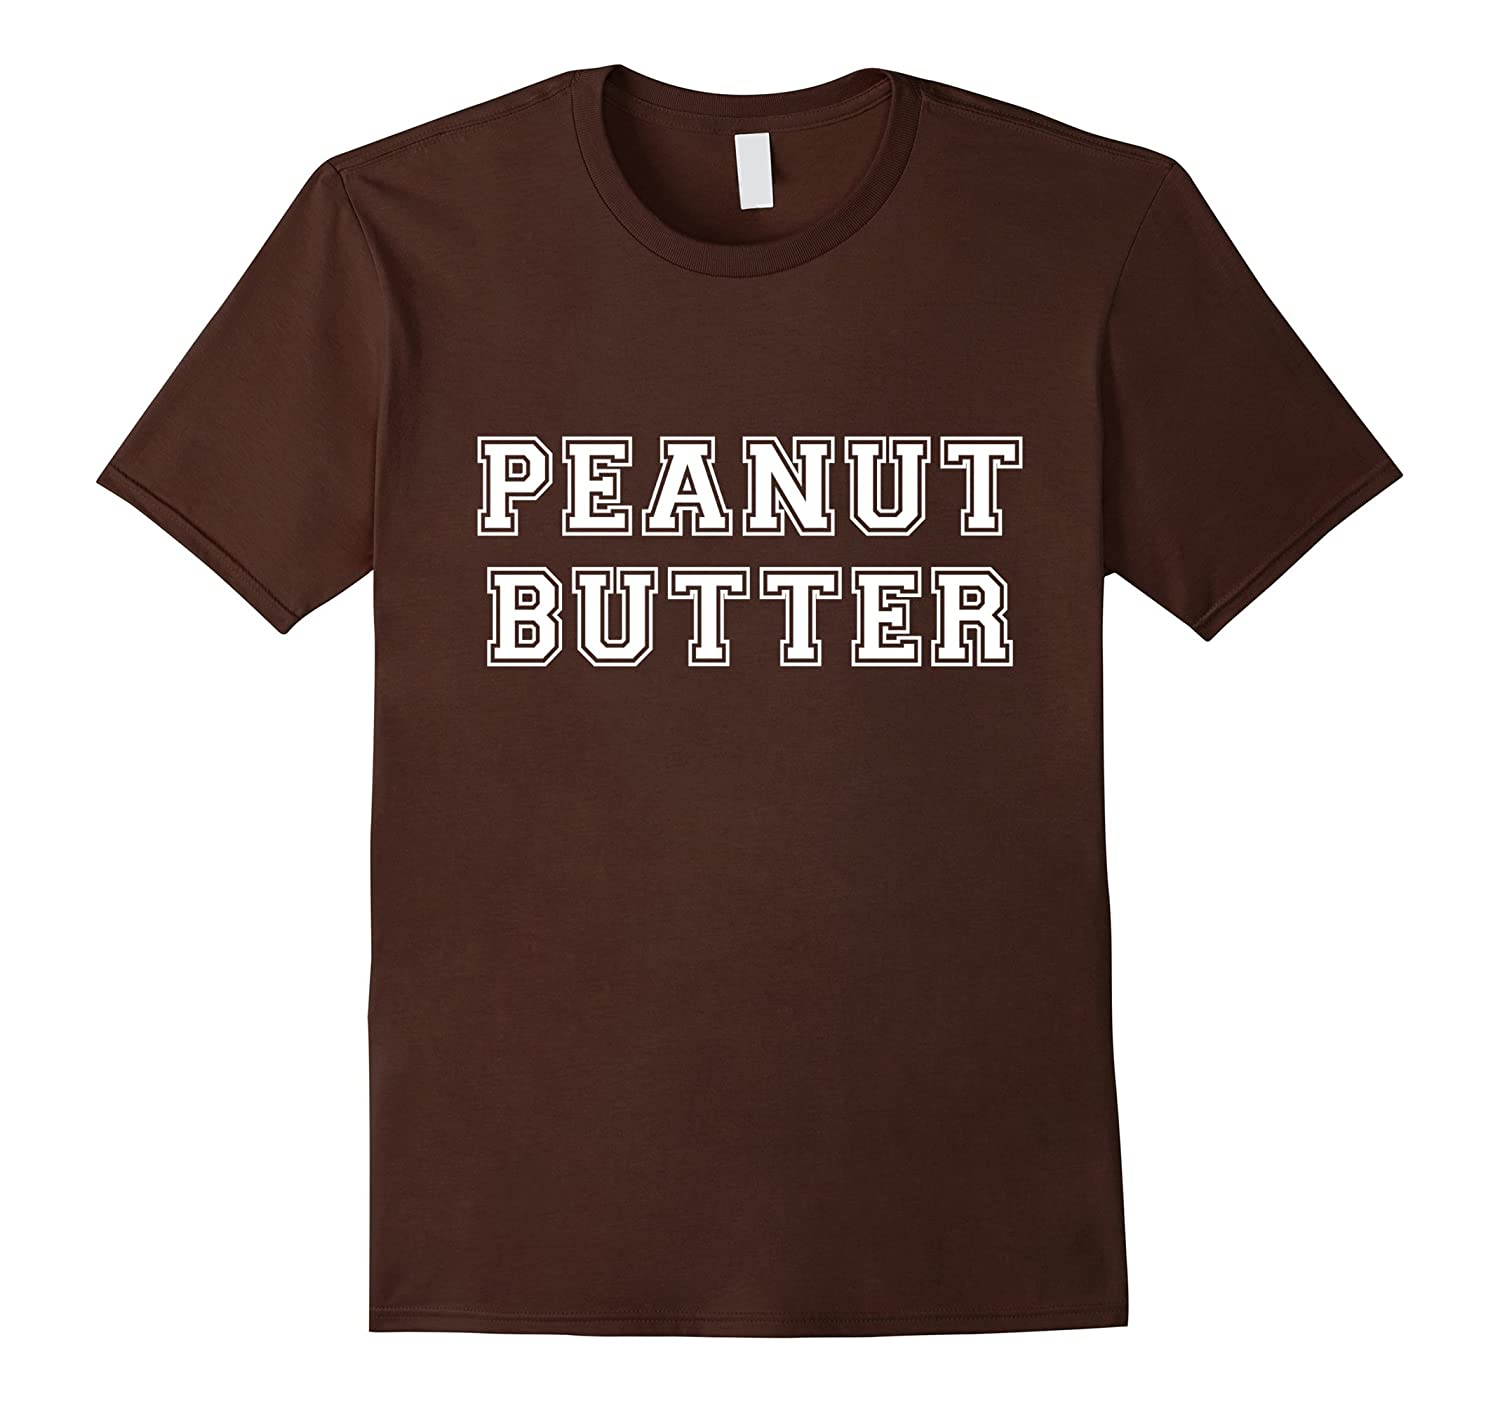 Peanut Butter & Jelly Couples Friends His Hers Costume Shirt-FL